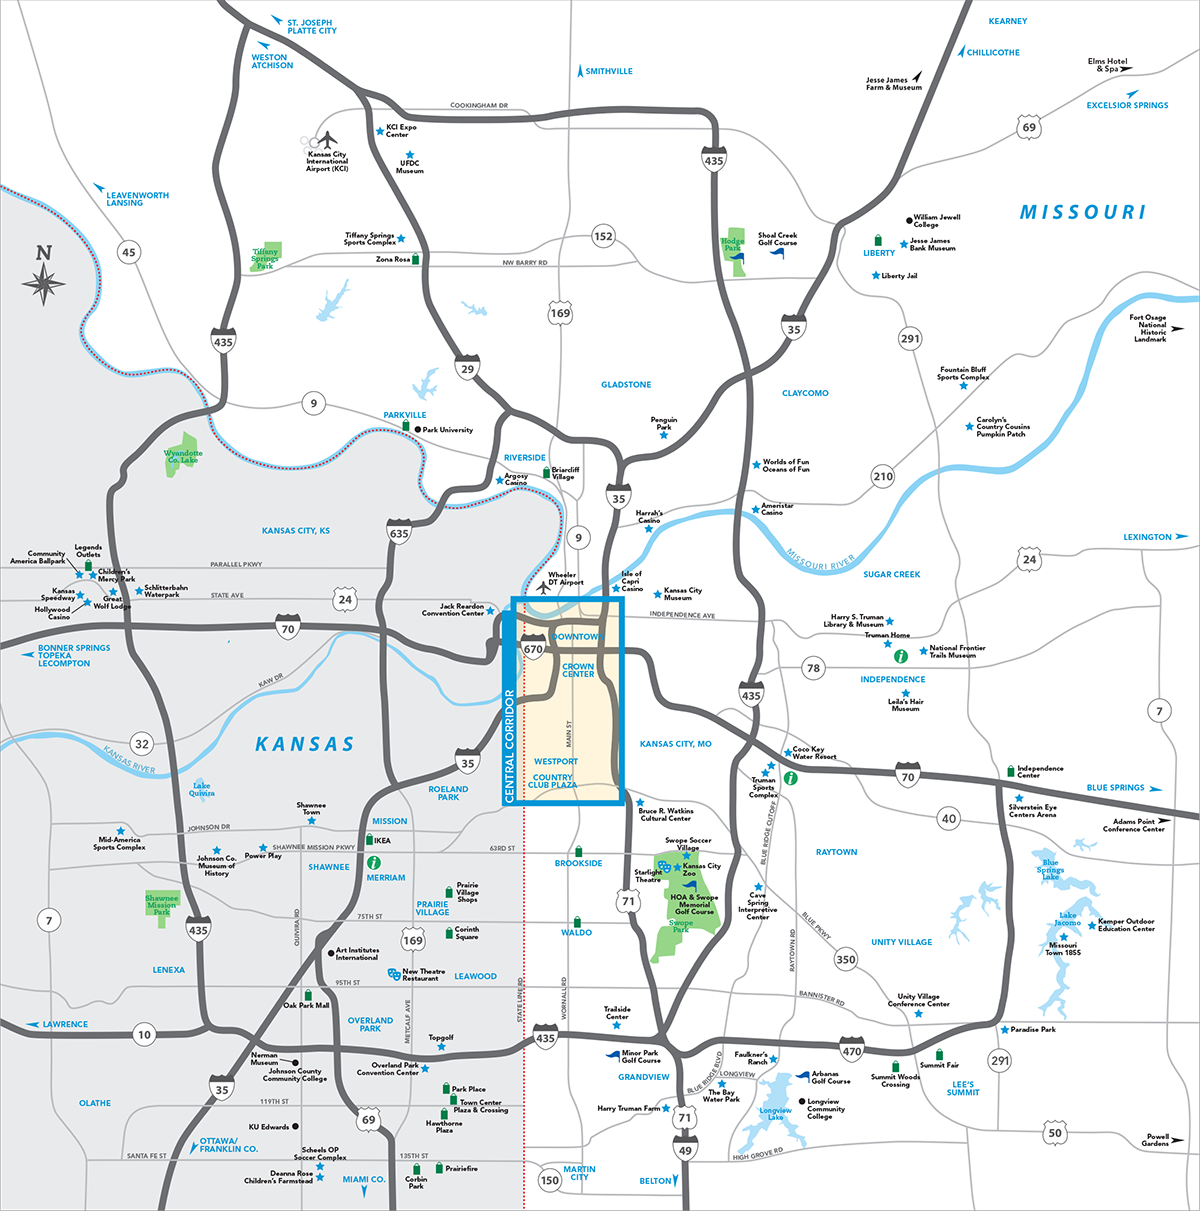 Kansas City Maps Kansas City Metro Map | Visit KC Kansas City Maps